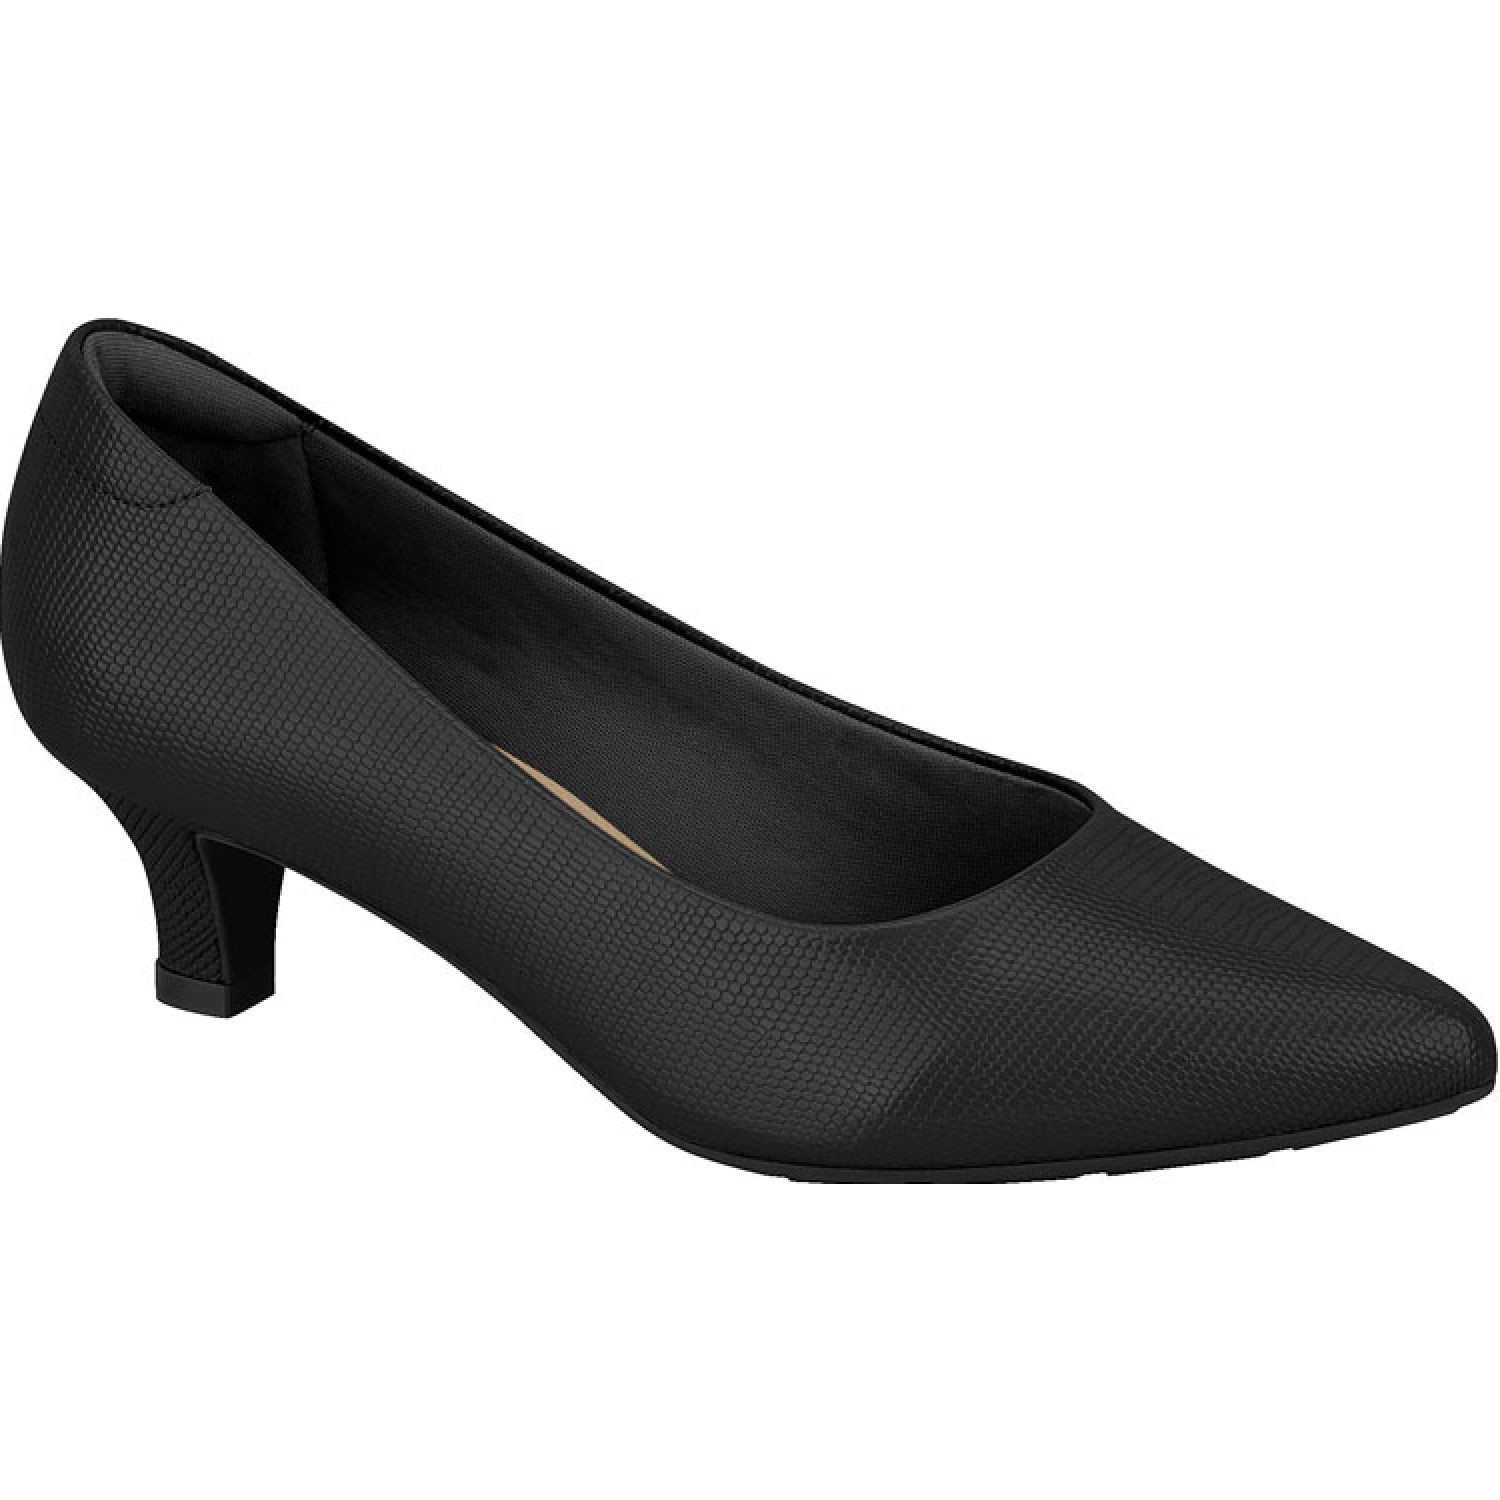 MODARE 7314.100.19200-15745 Negro Estiletos y pumps